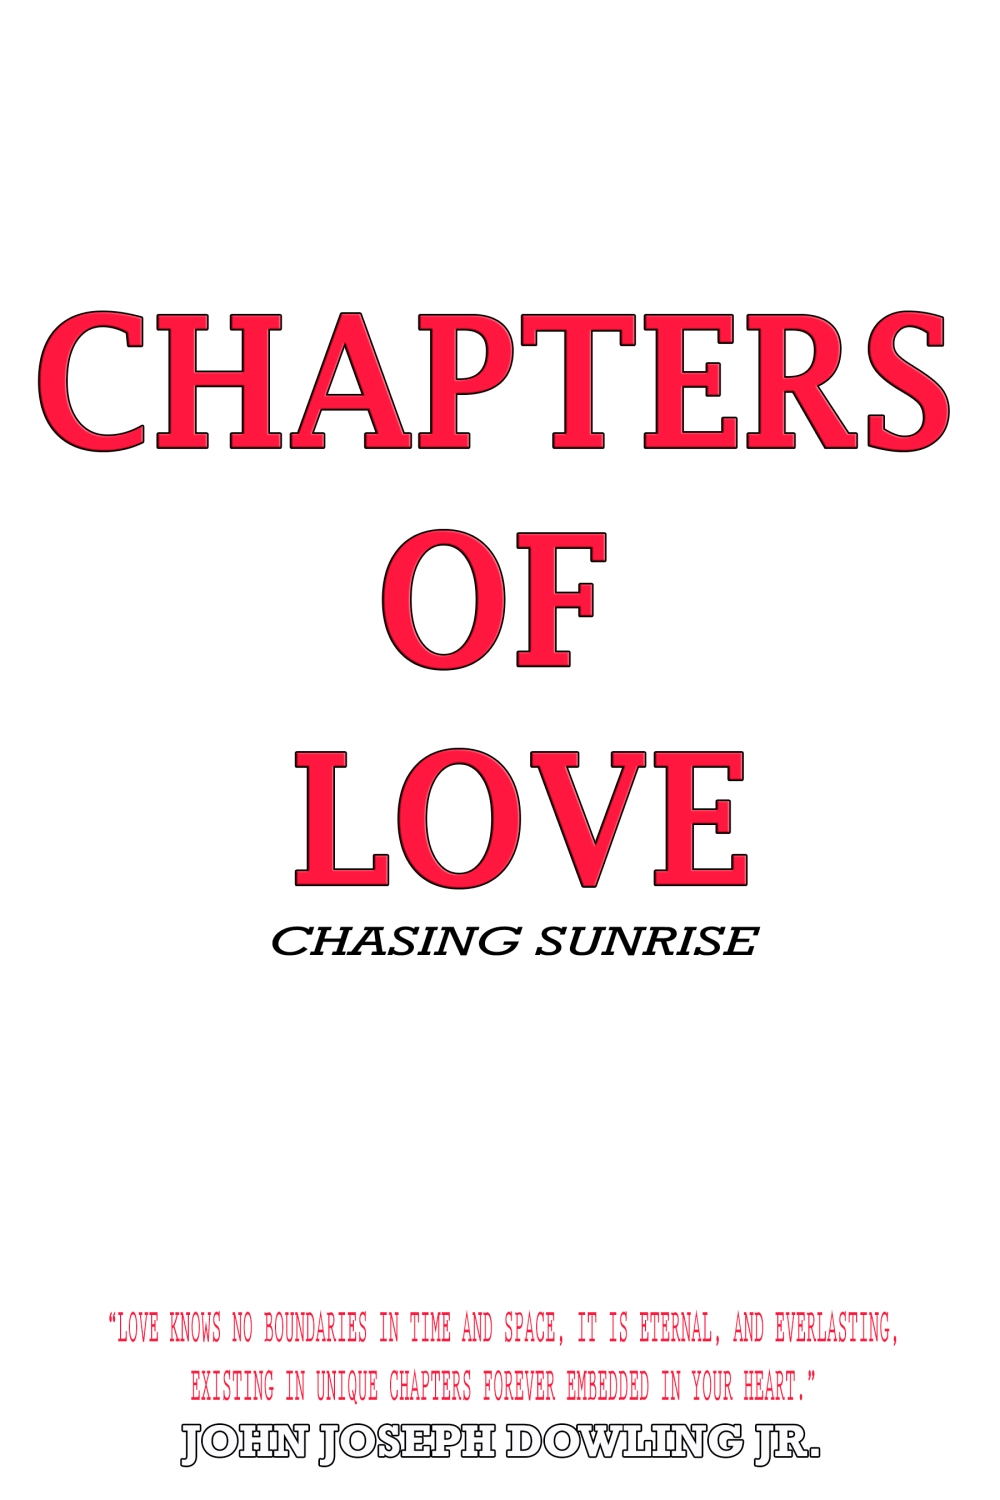 Chapters Of Love HardCover and Paperback Cover 3